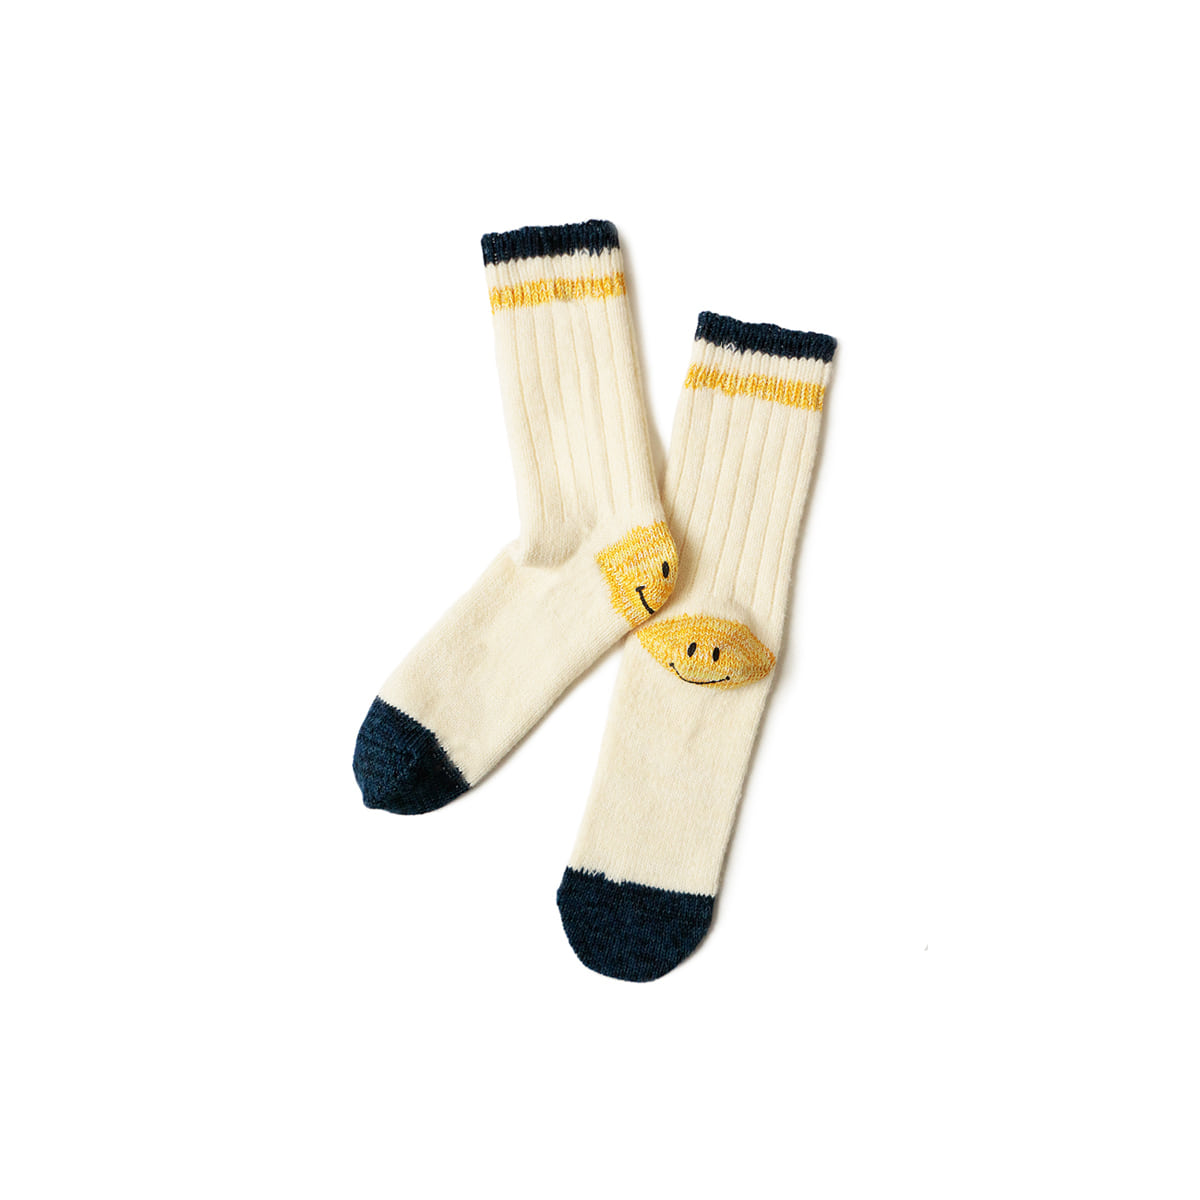 [KAPITAL] 72 YARNS WOOL IVY SMILE SOCKS 'WHITE'